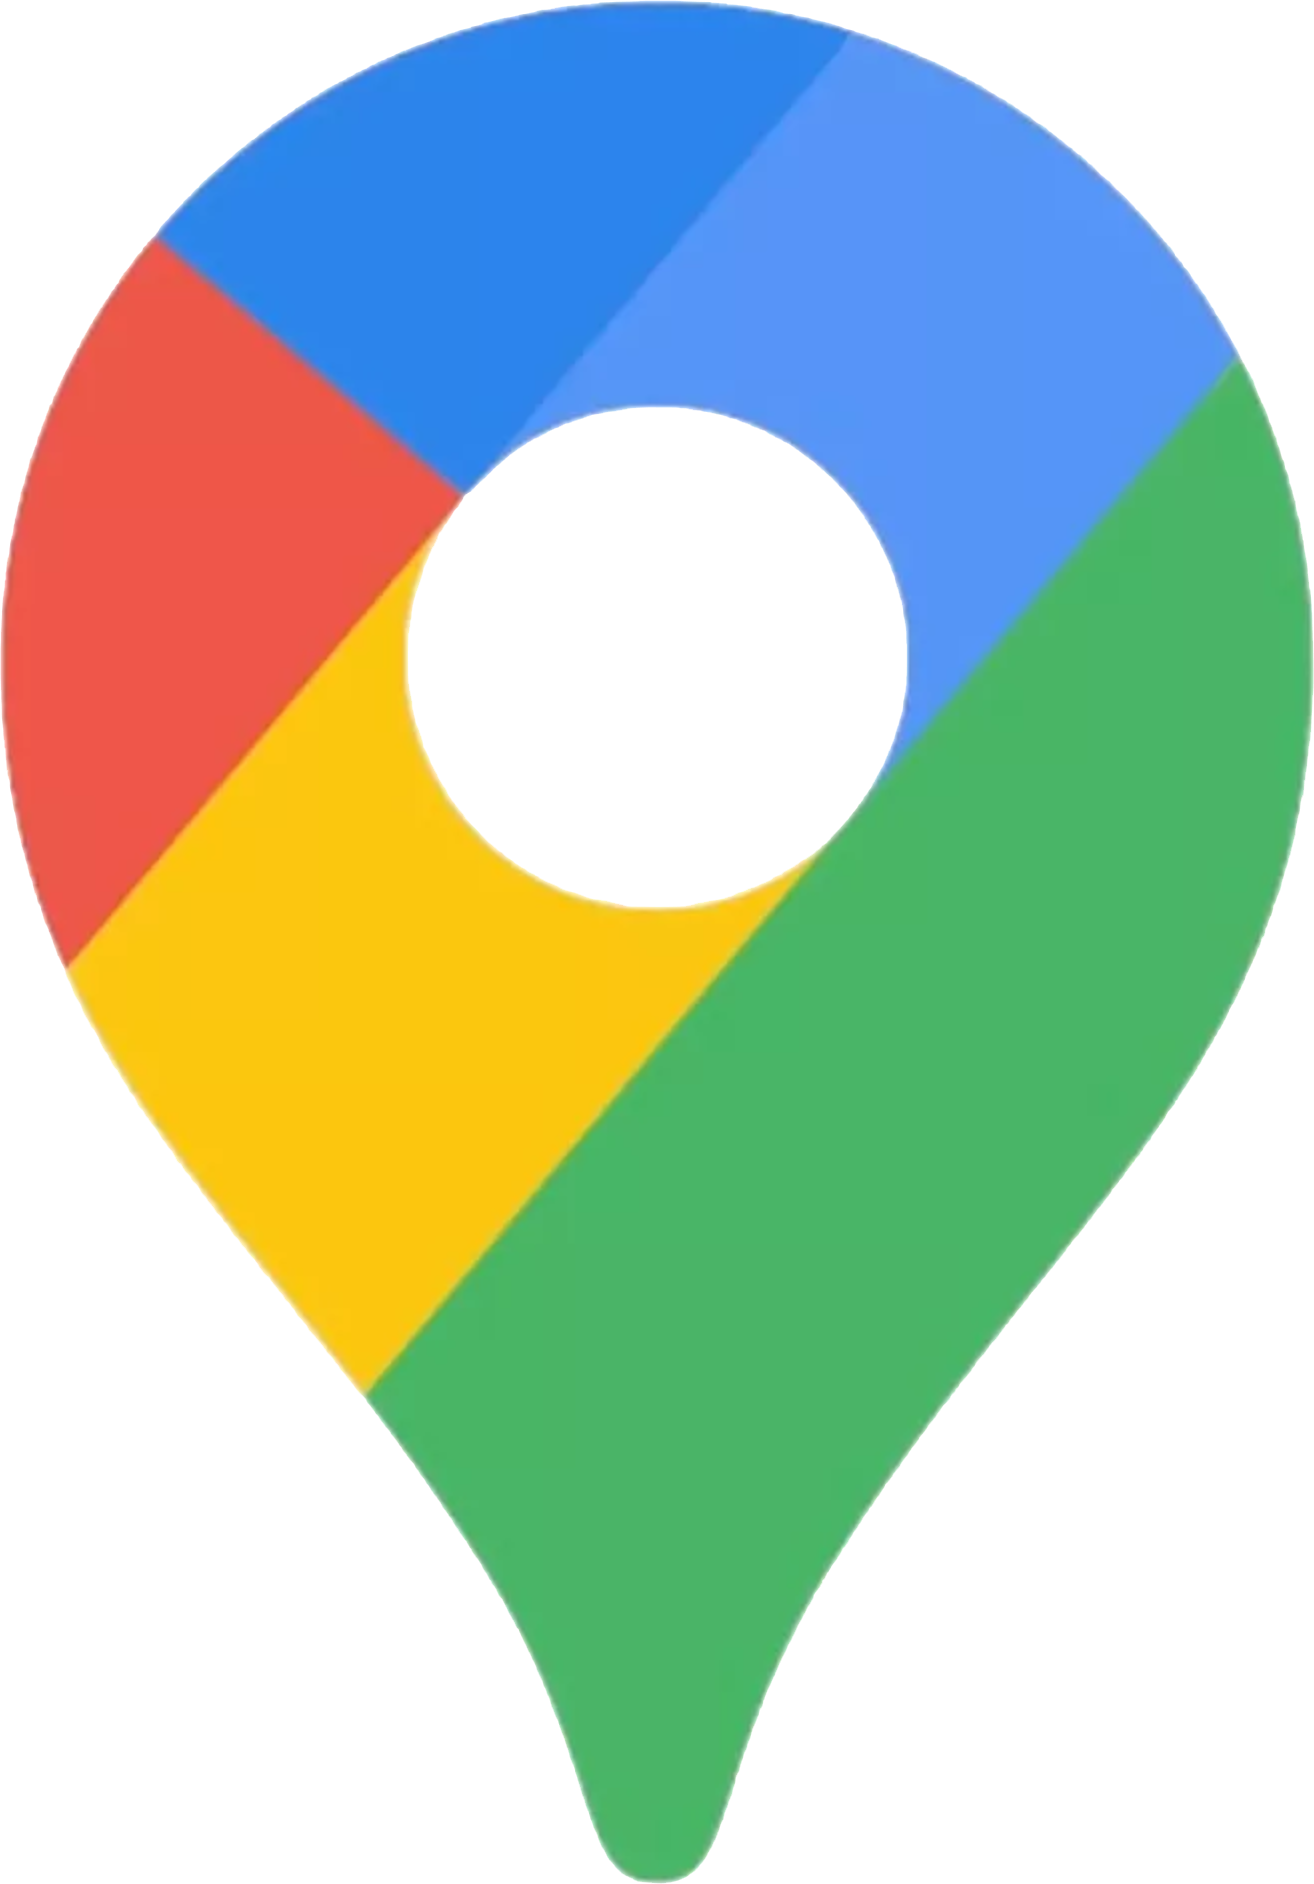 Google Maps Celebrates 15 Years With New Maps Icon & Map Features